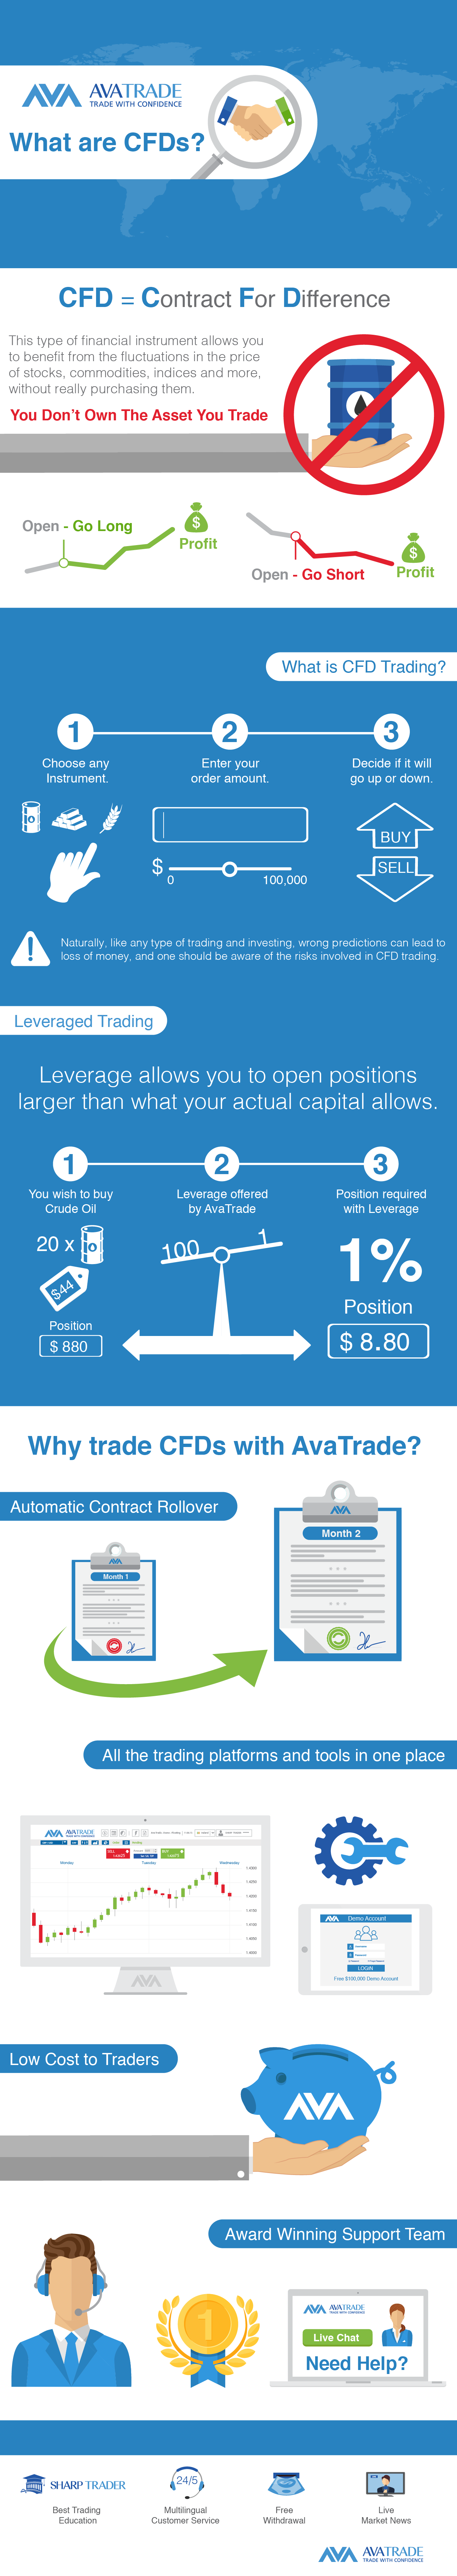 cfd uk infographic